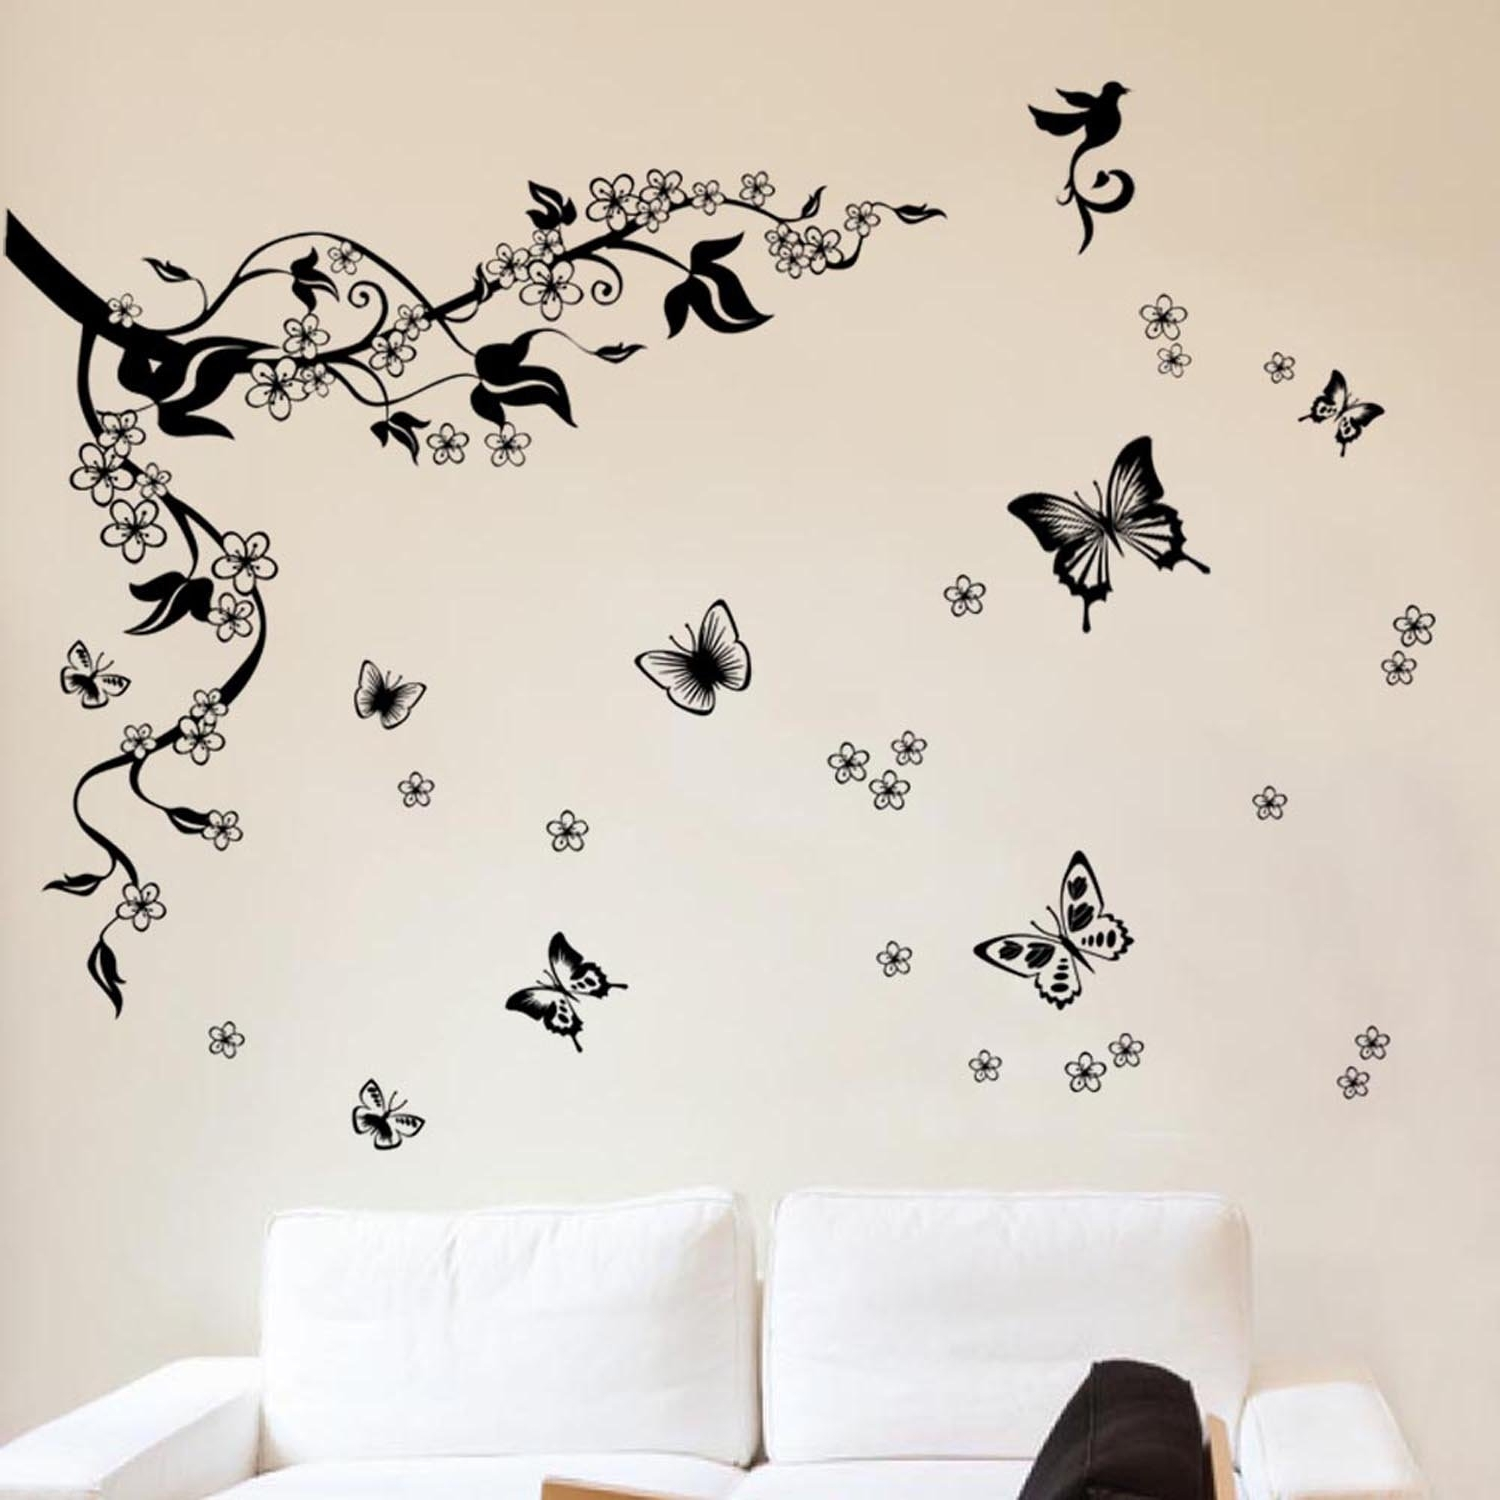 Wall Art Stickers With Popular Removable Wall Art Stickers: Amazon.co (View 15 of 15)